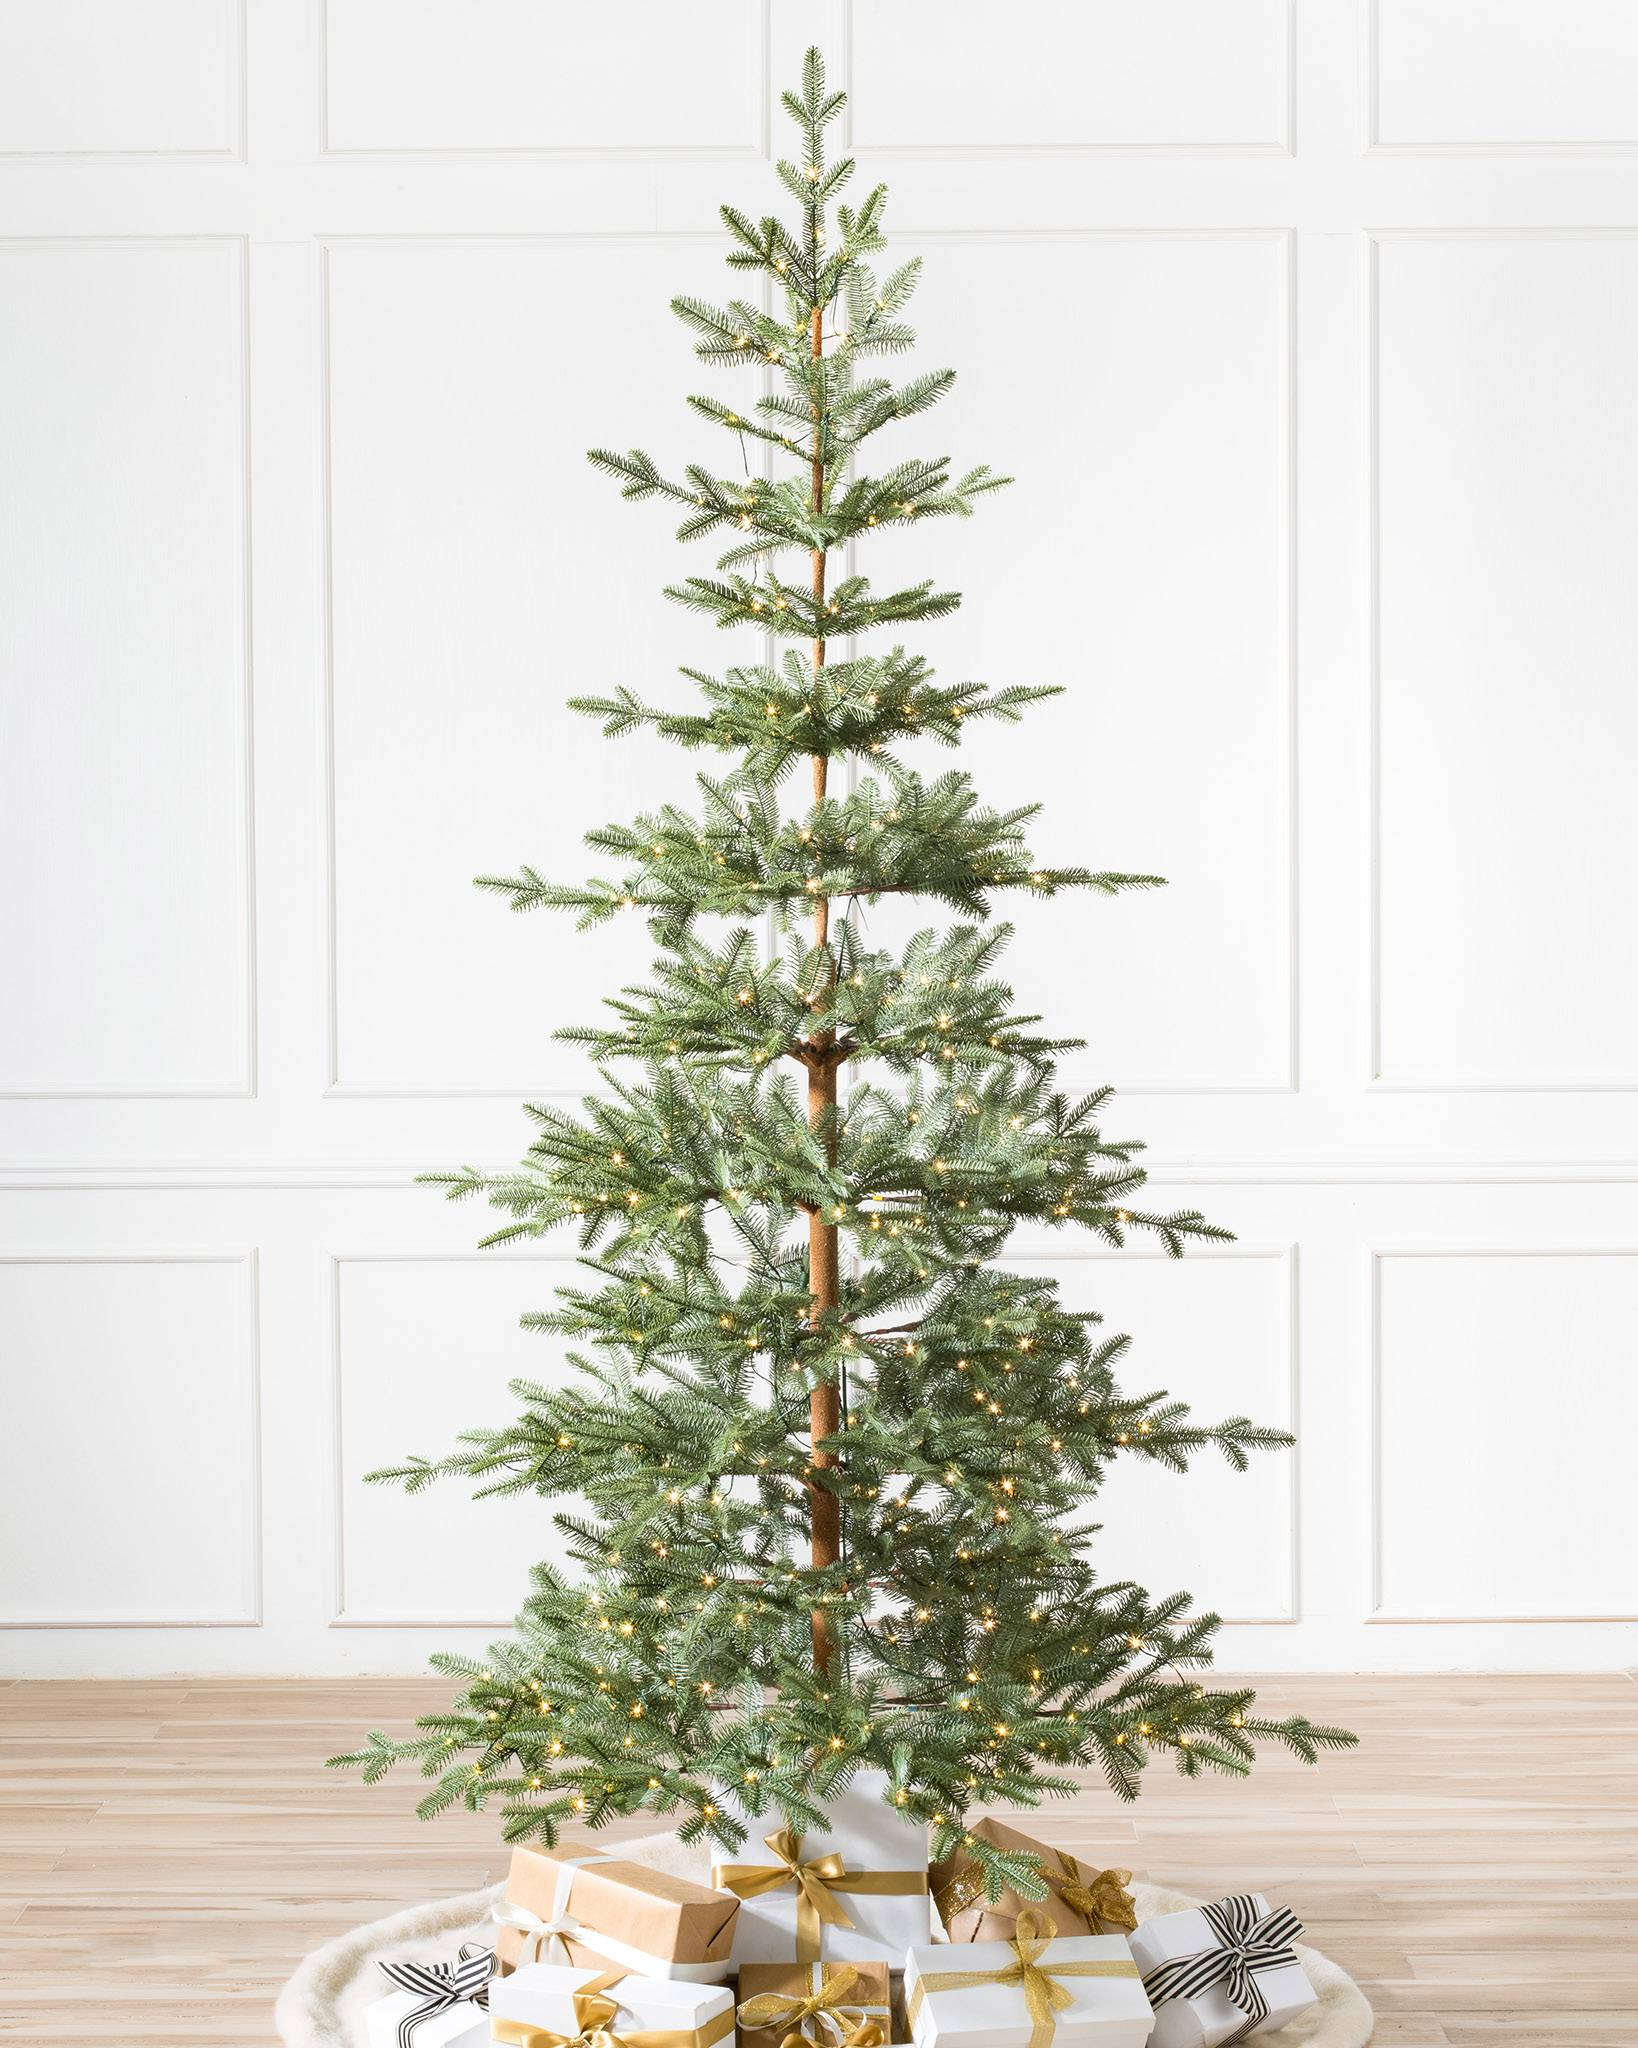 alpine balsam fir artificial christmas tree by balsam hill - Artificial Christmas Trees